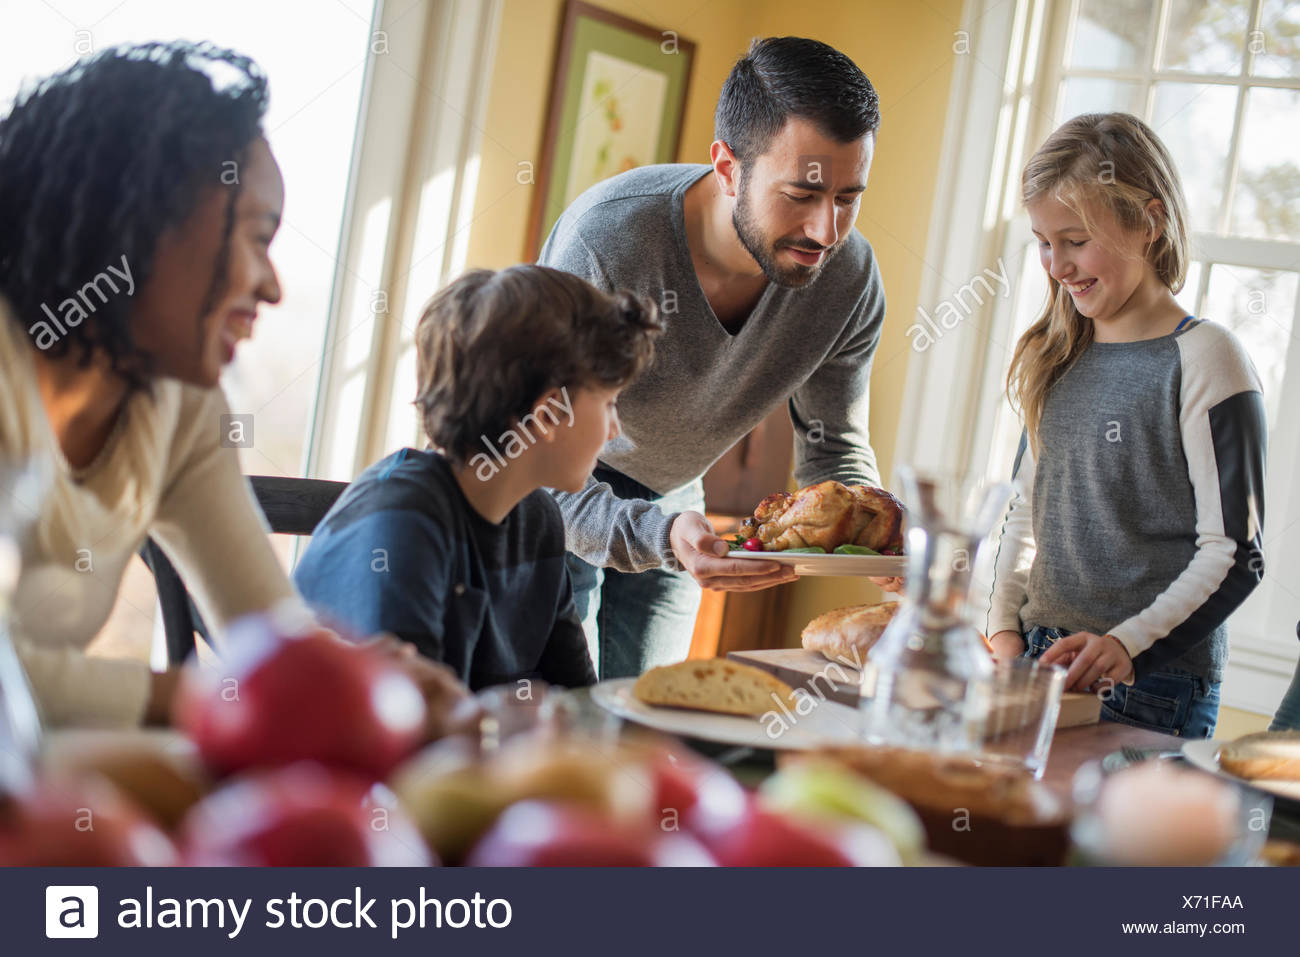 Adults and children gathered around a table for a meal. - Stock Image